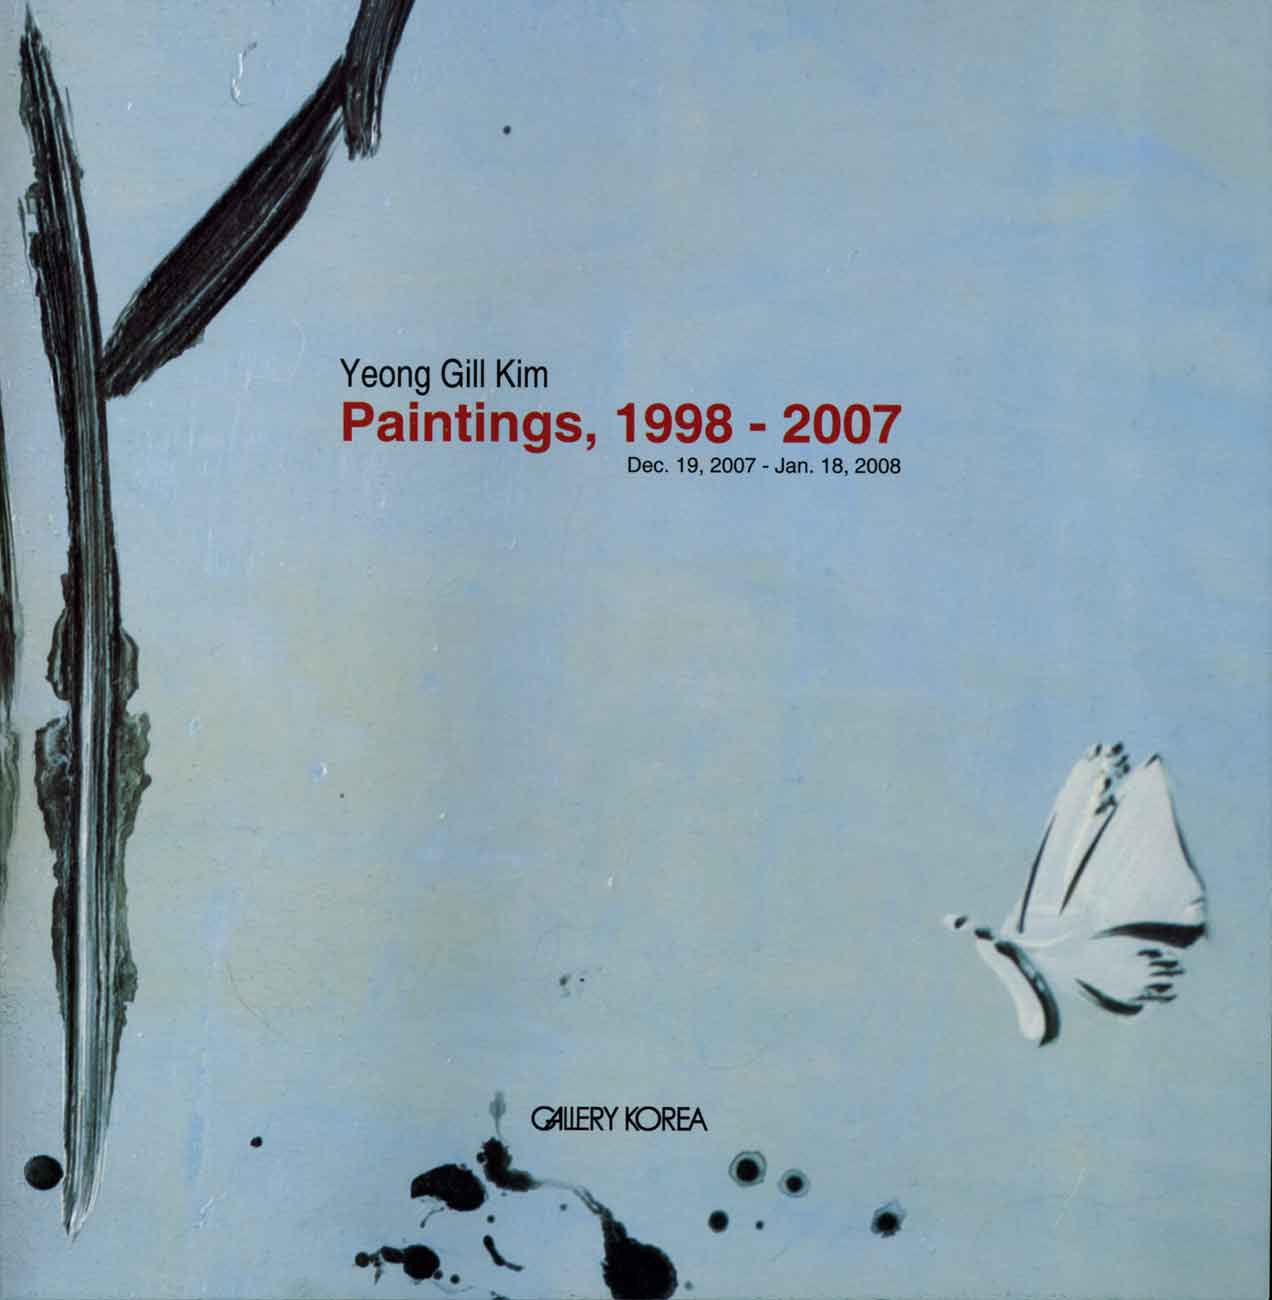 Yeong Gill Kim: Paintings, 1998-2007, cover page